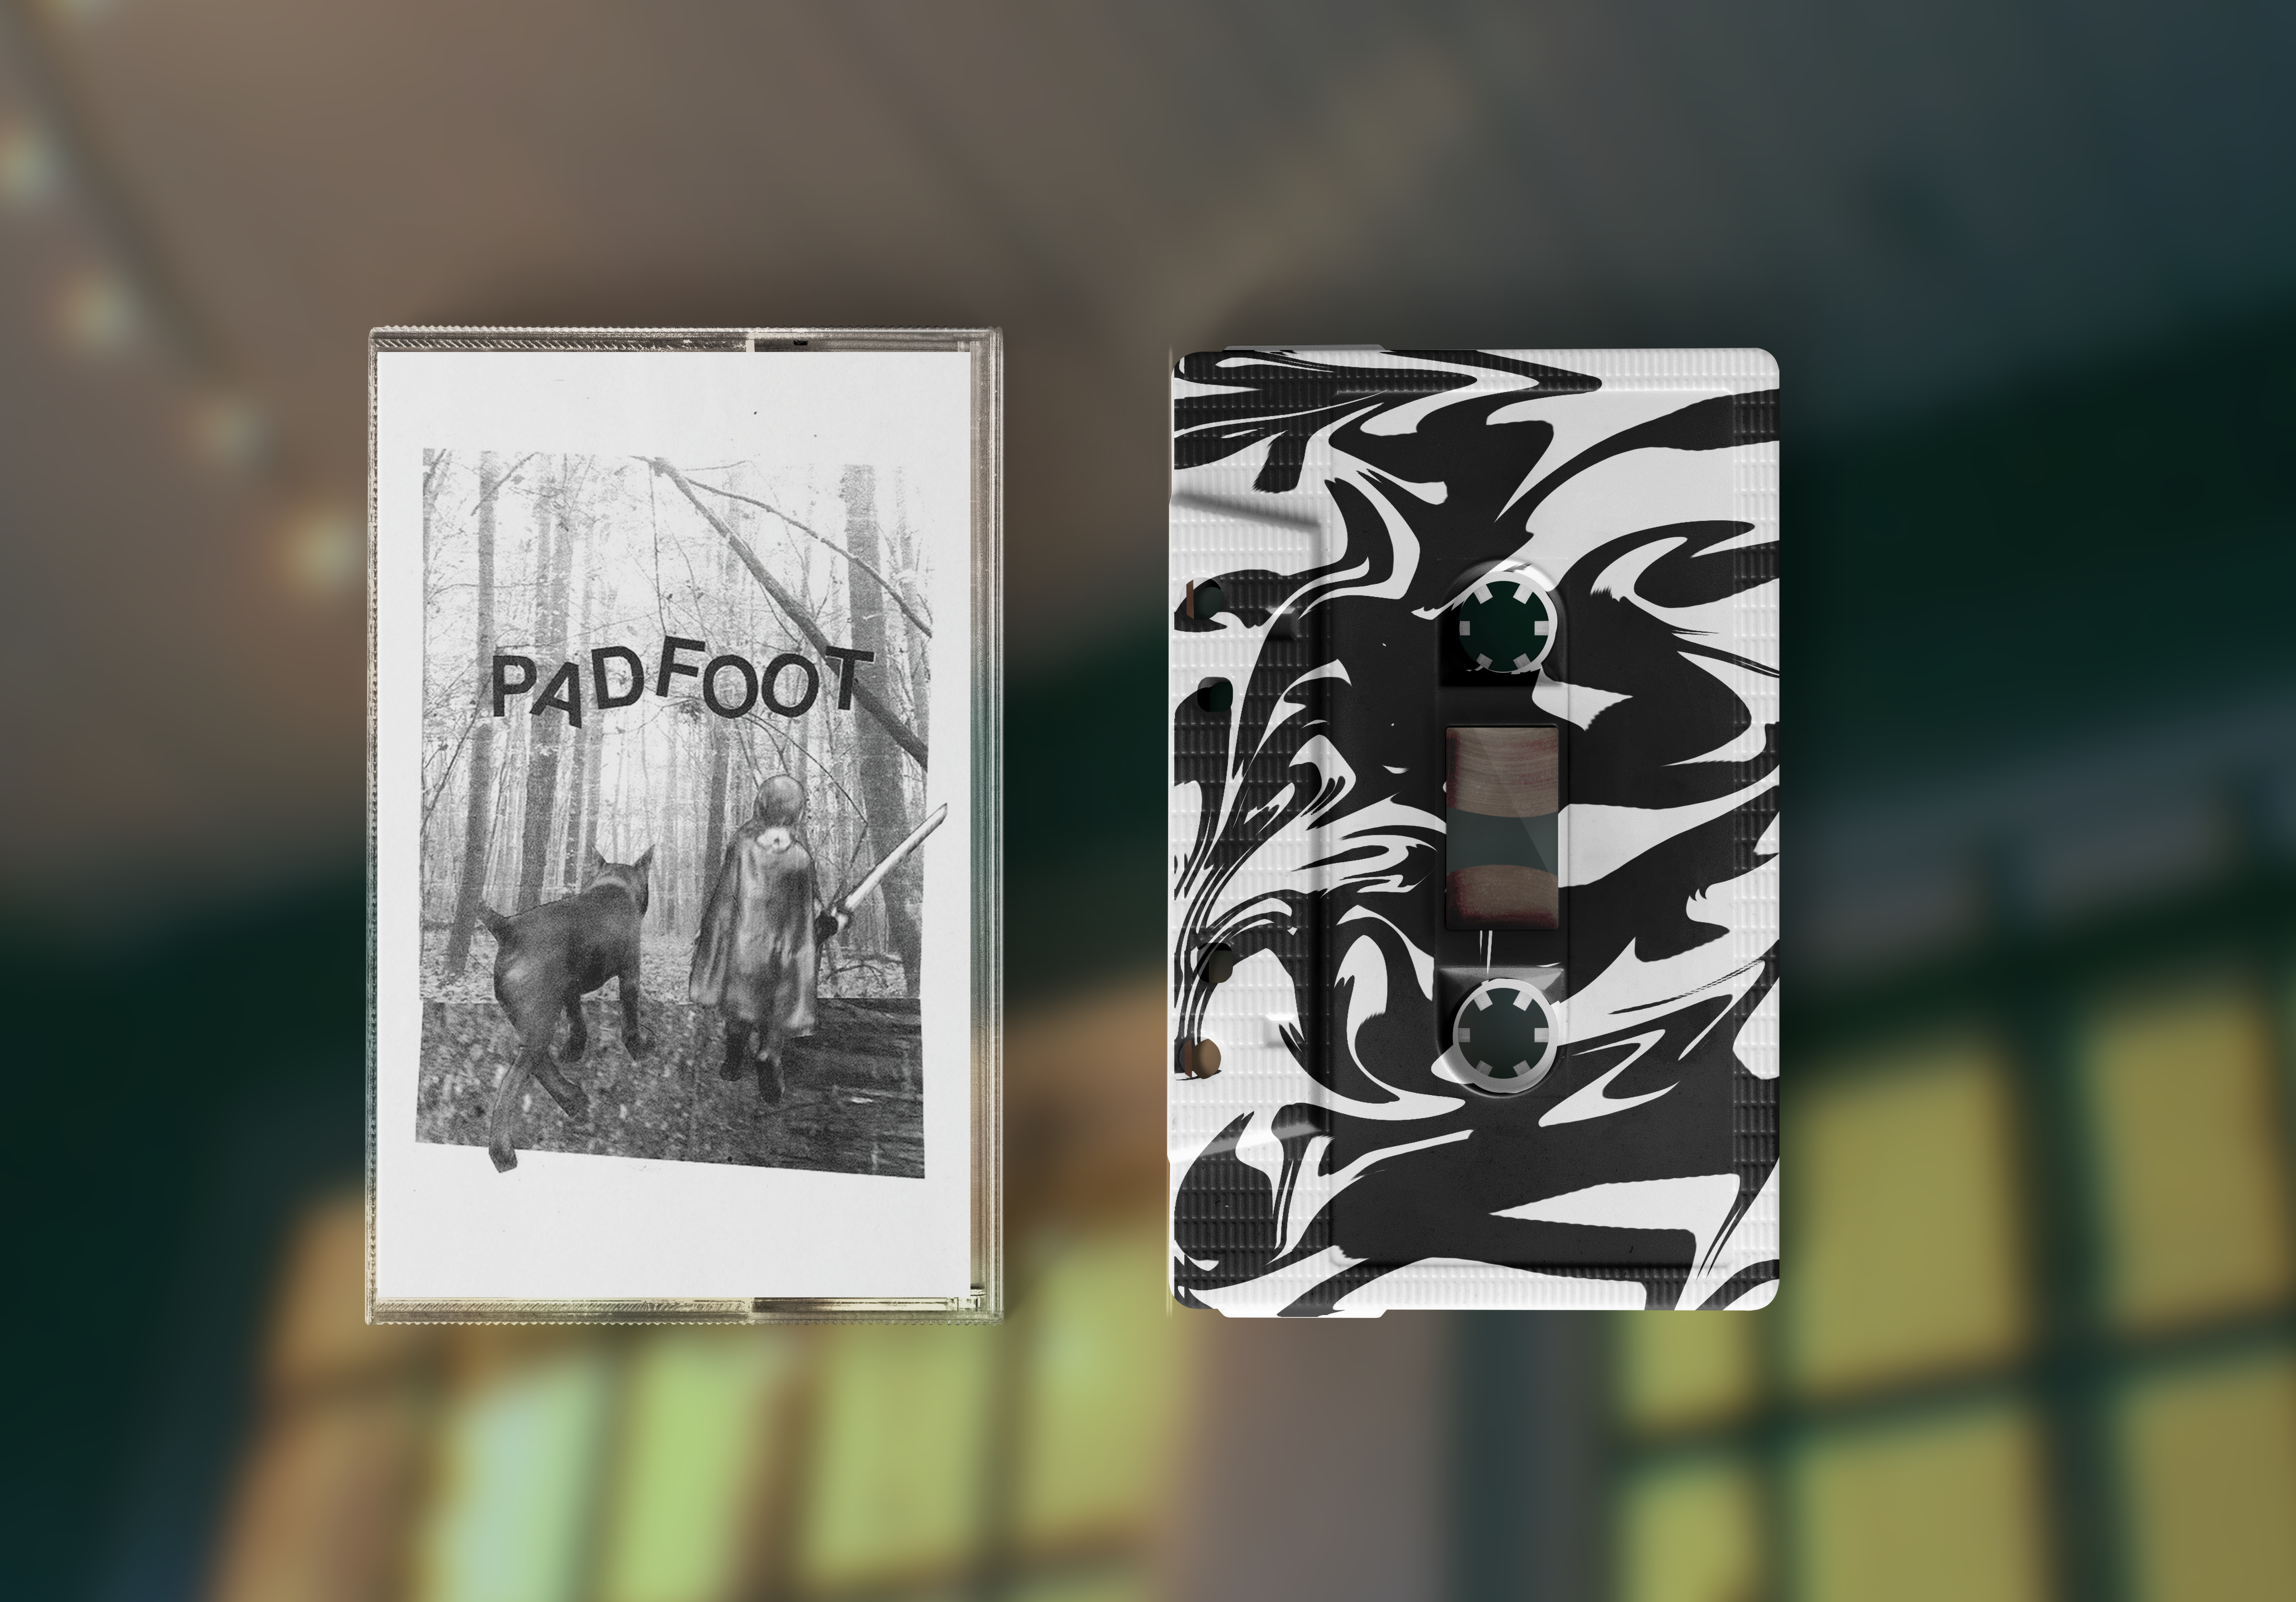 Padfoot Discog Tape (extremely limited)